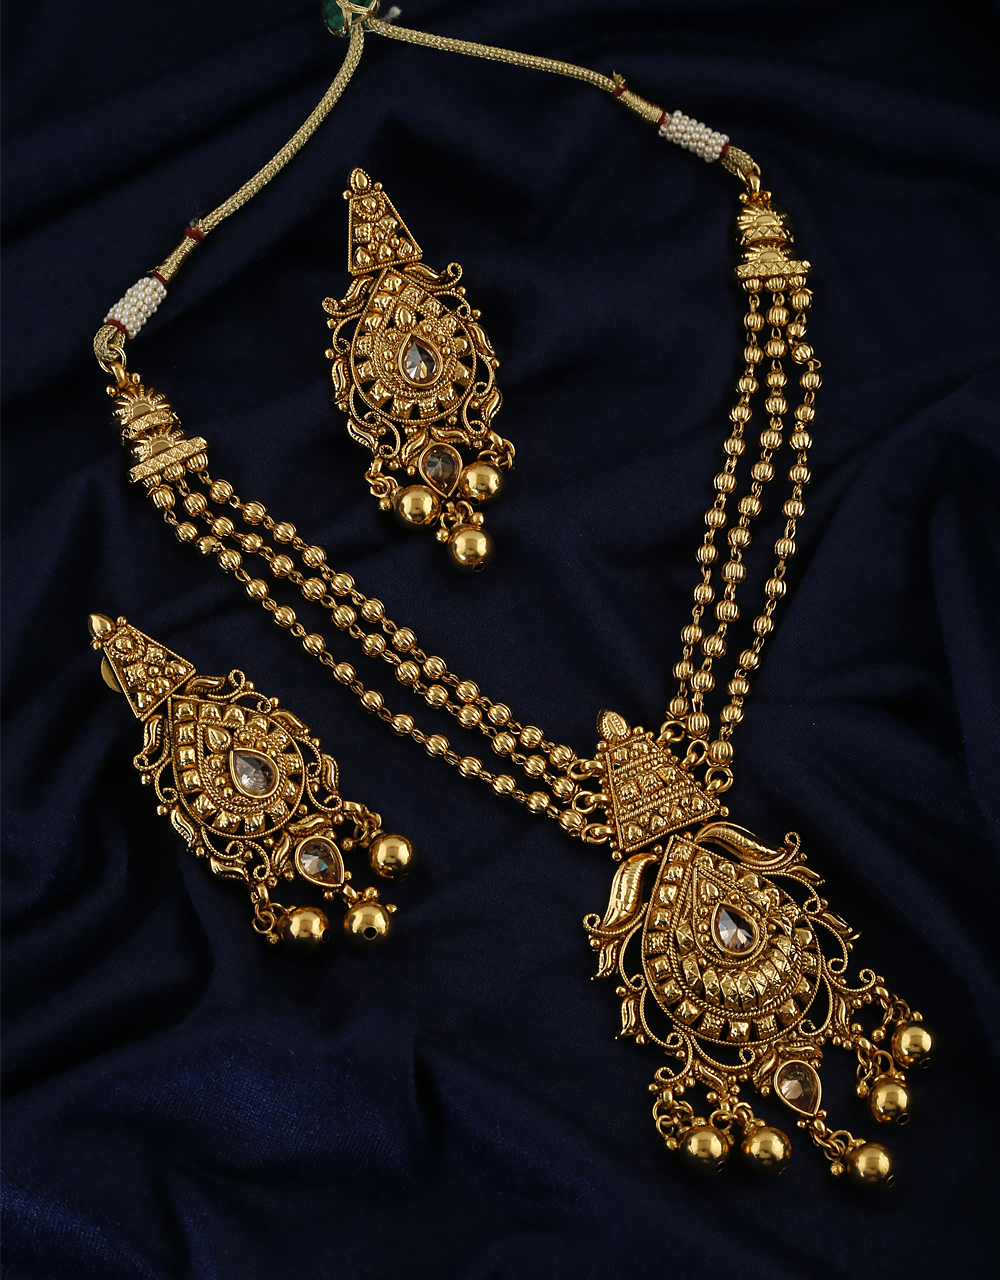 Antique Design With Sparkling Gold Finish Necklace With Pair Earring For Women